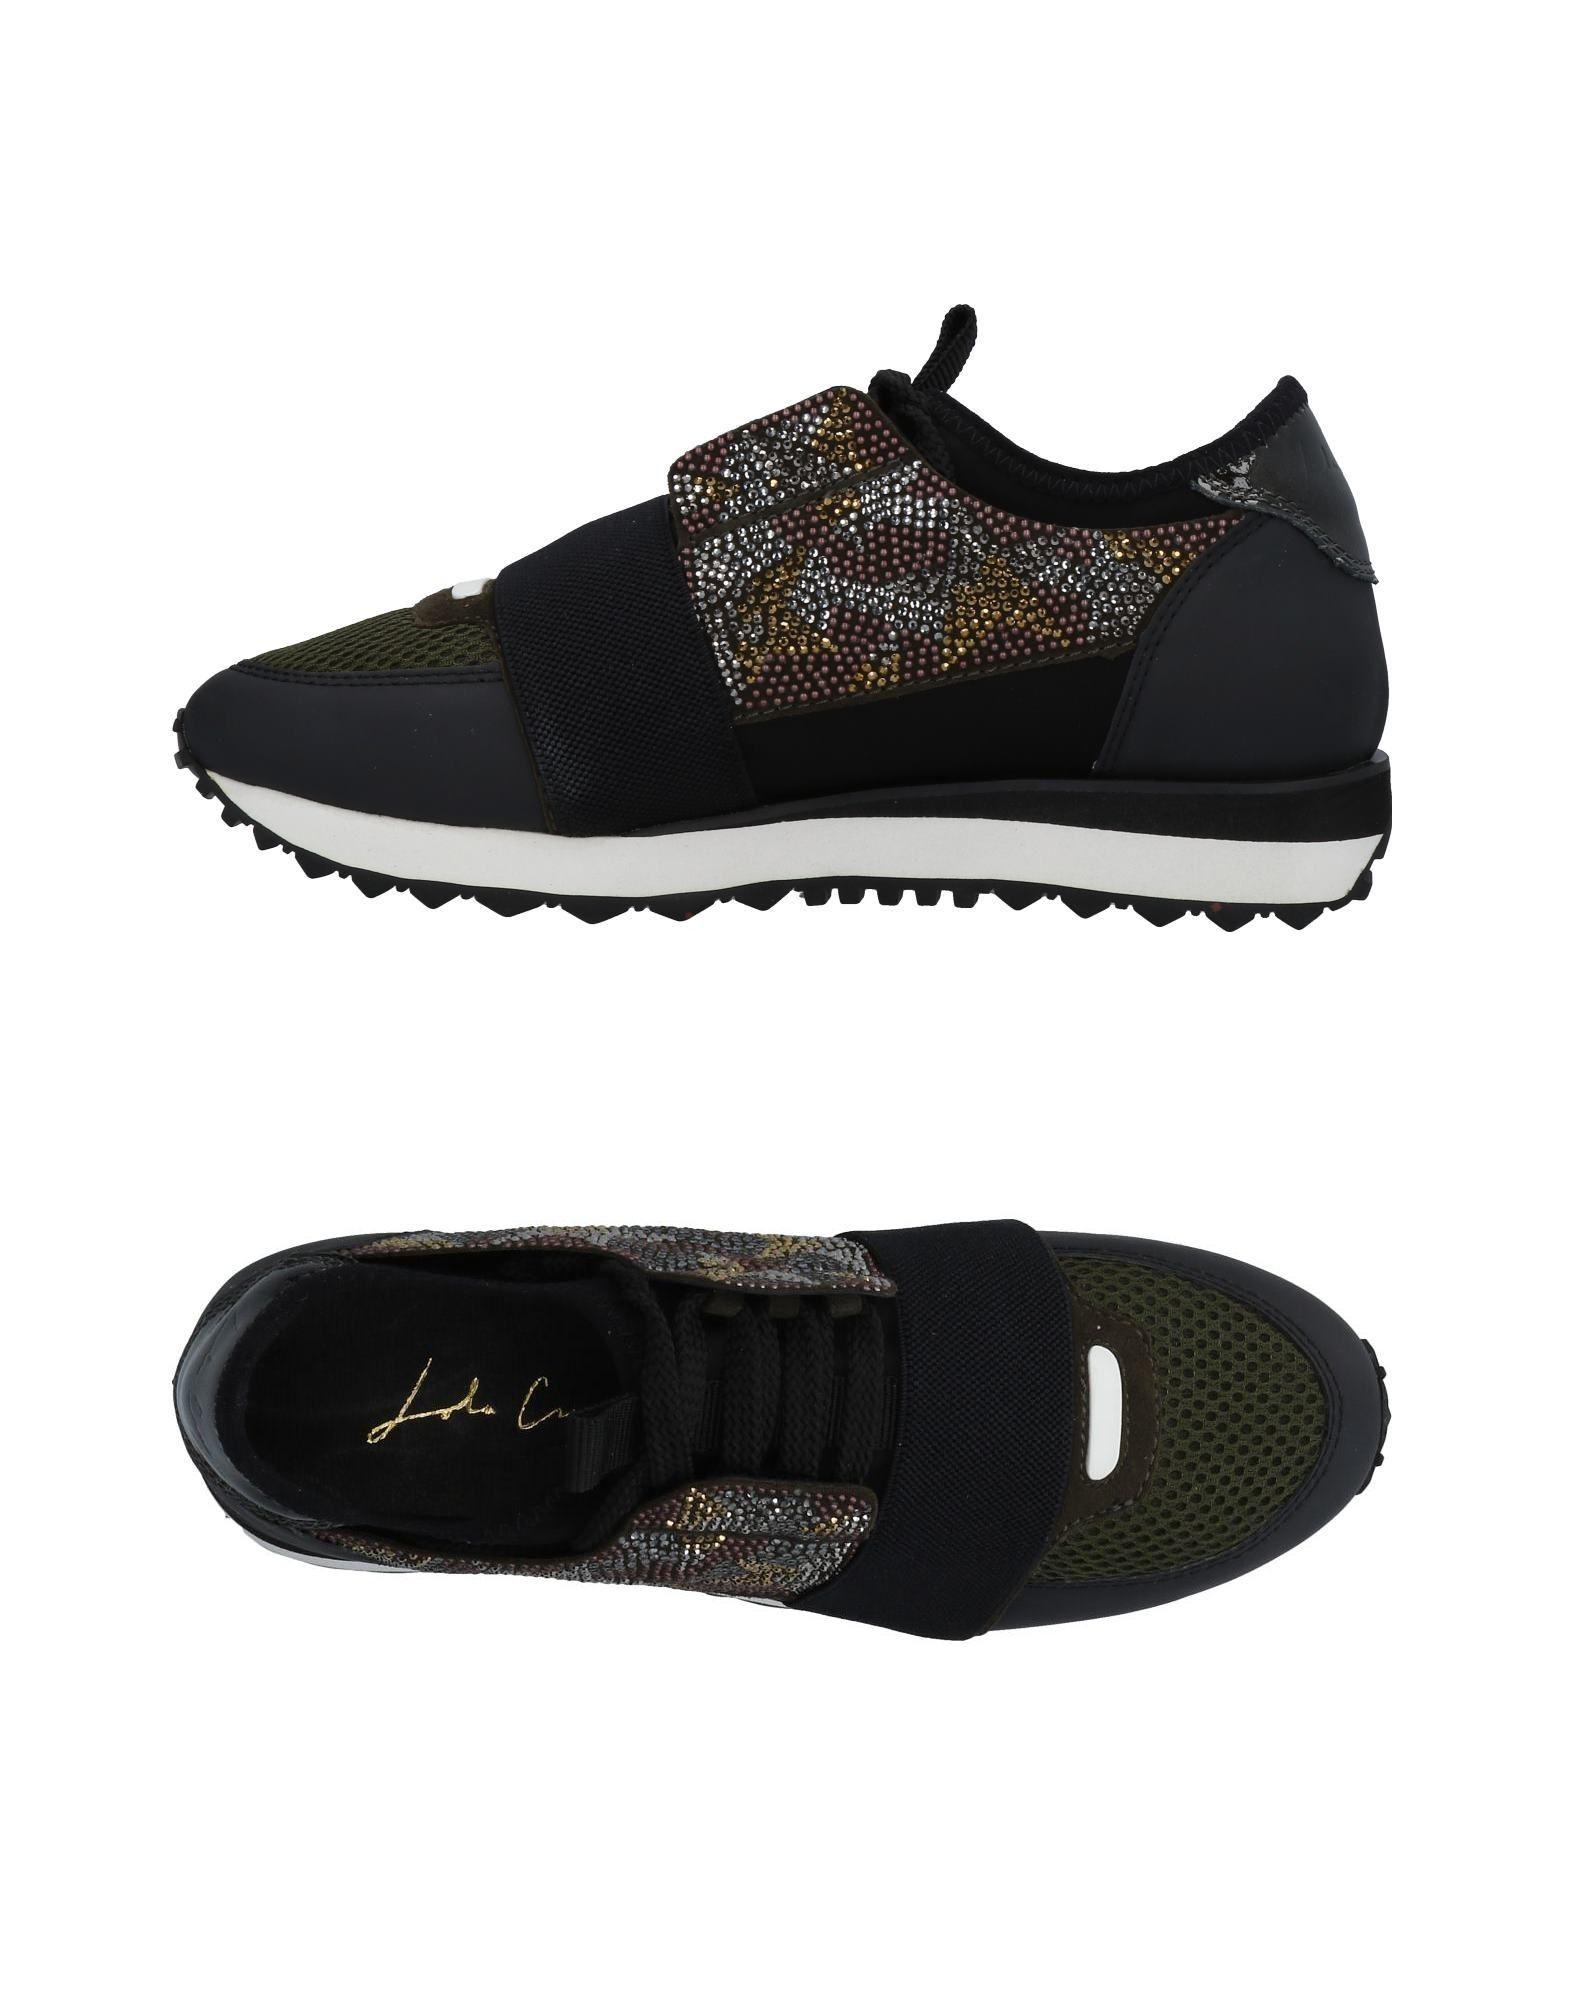 amp; Cruz Lola Lyst Sneakers Low Tops 18Ixxqg